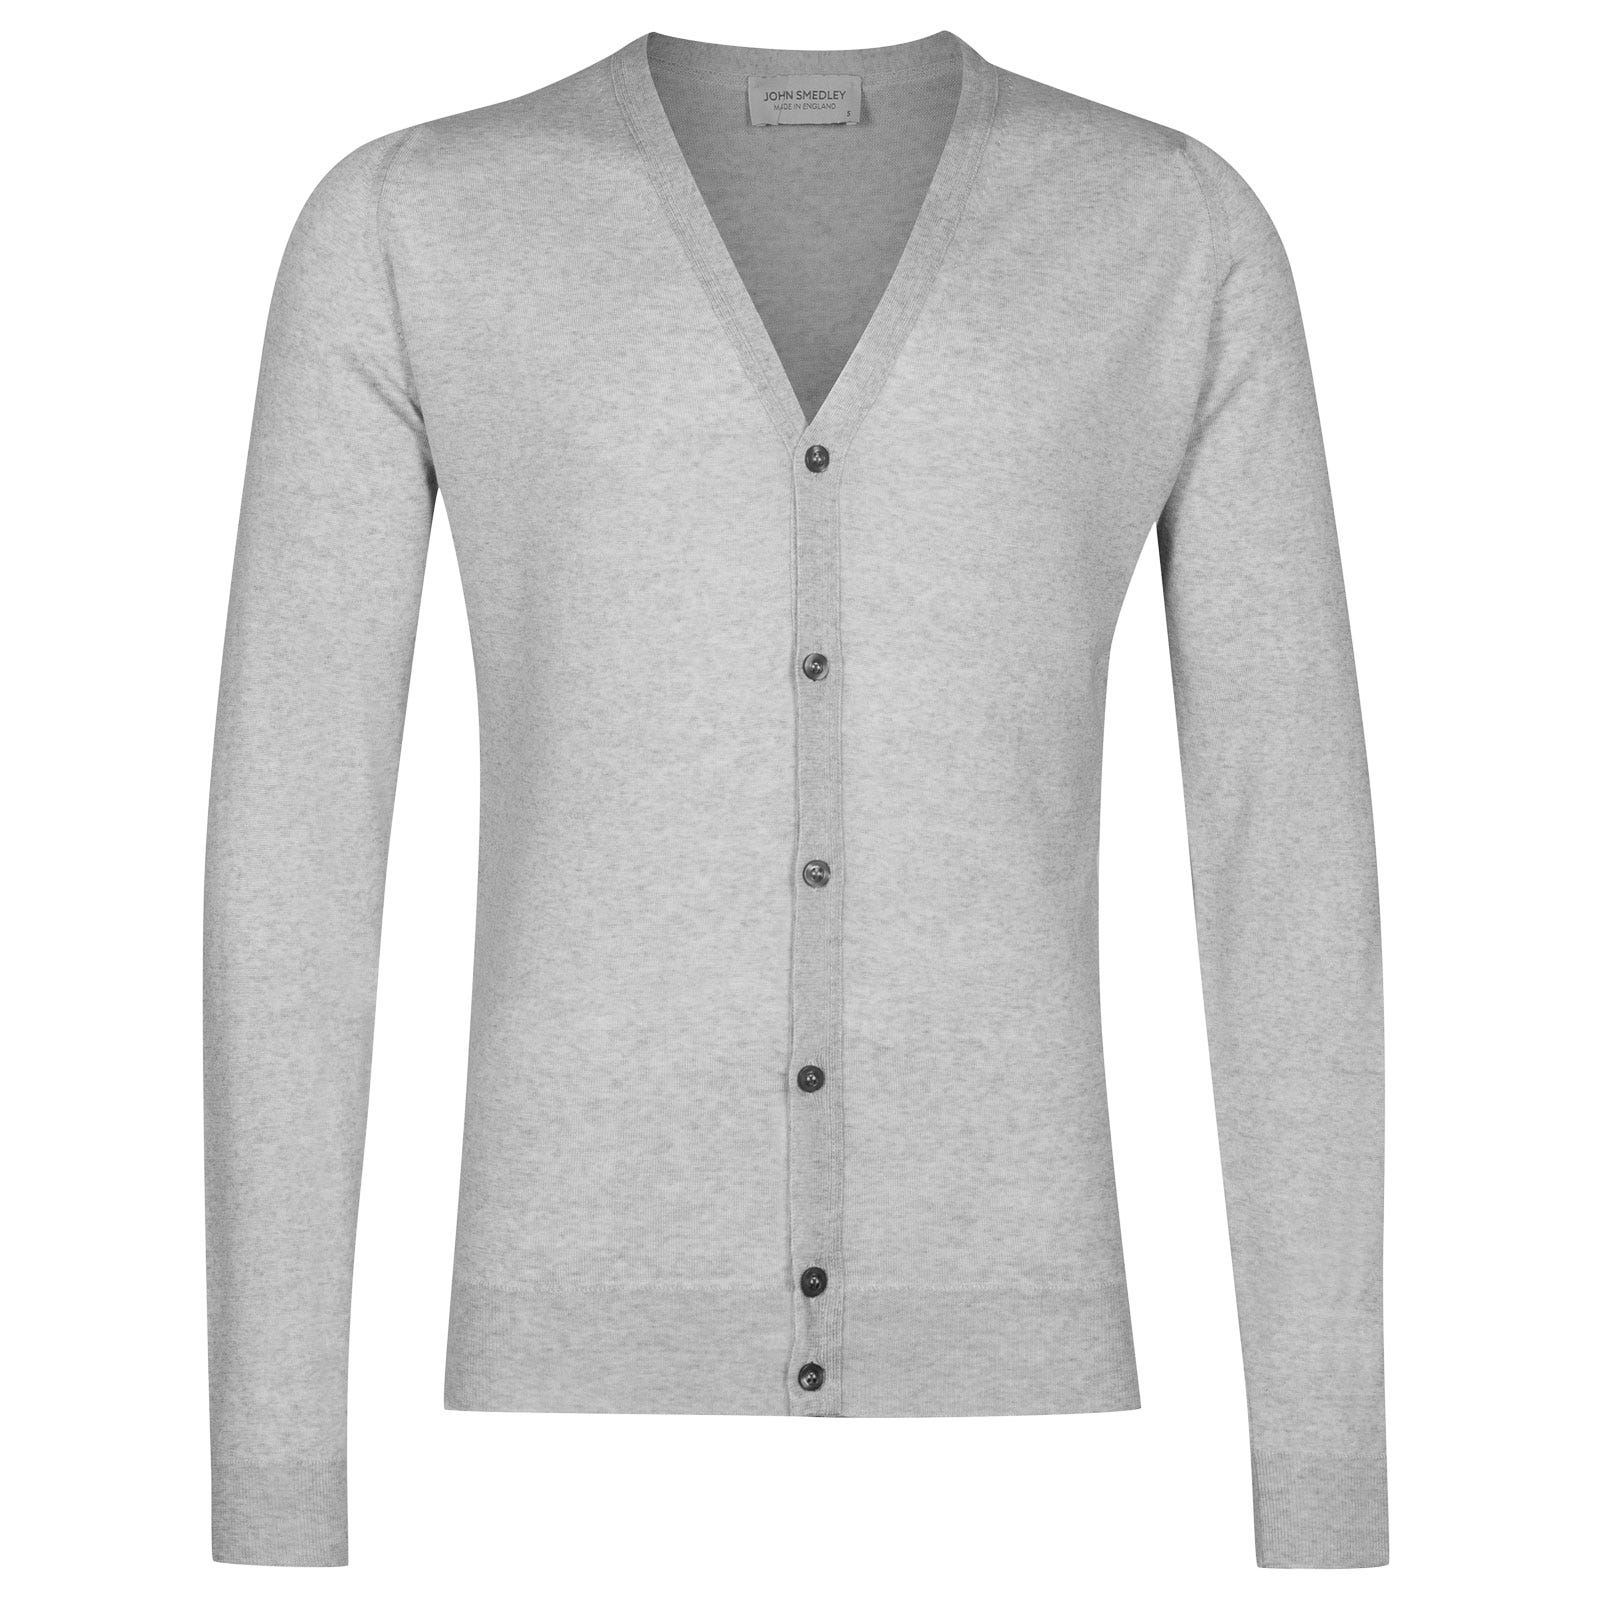 John Smedley petworth Merino Wool Cardigan in Bardot Grey-XXL